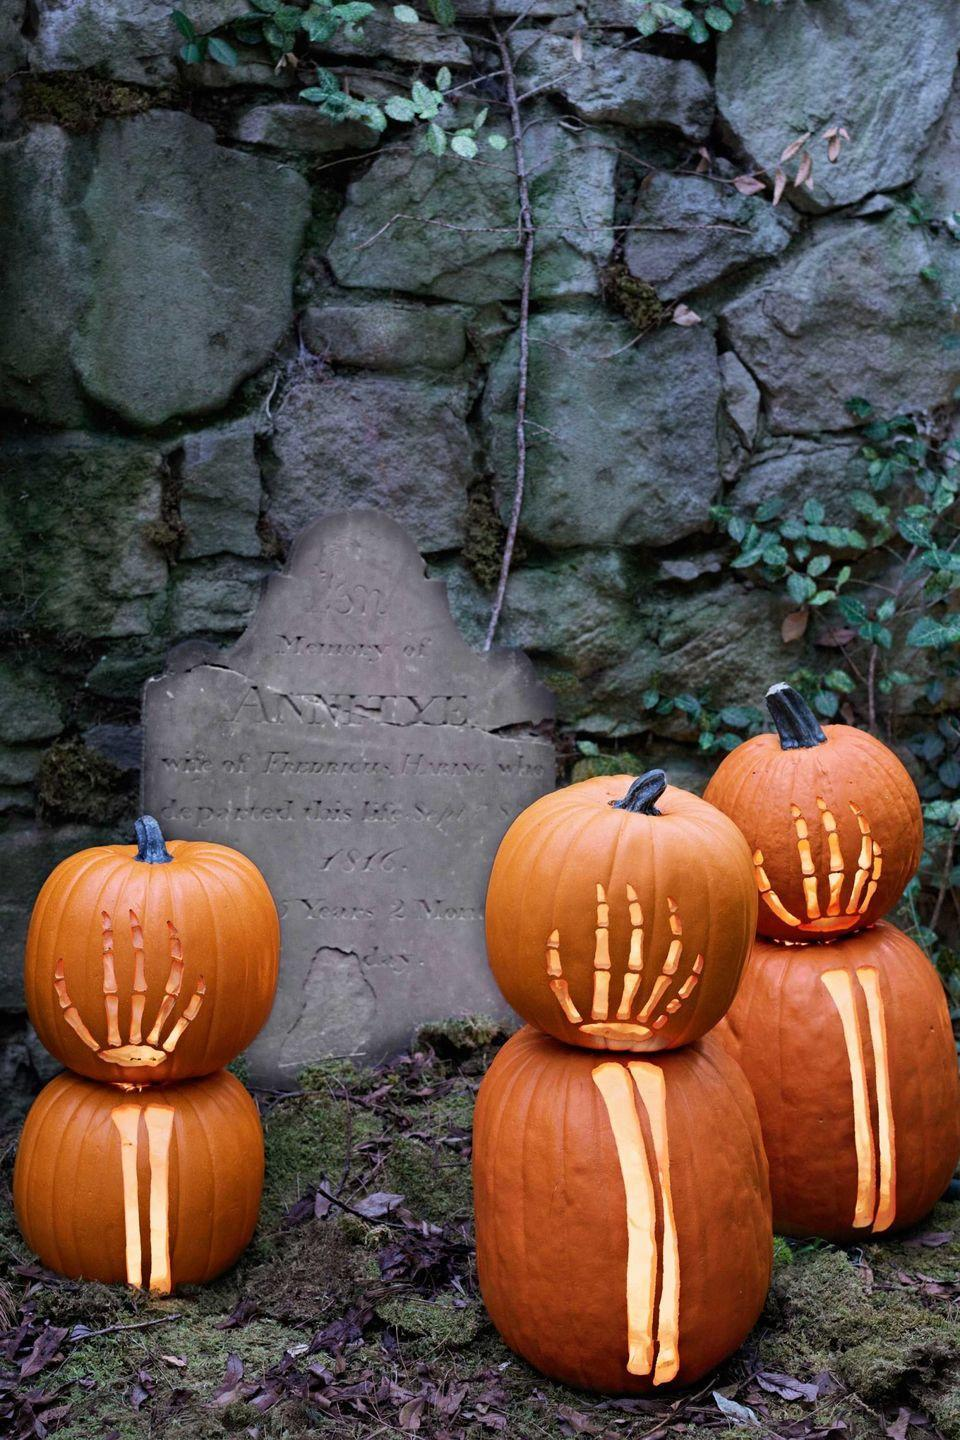 "<p>The walking dead can come straight out of your backyard with these clever pumpkins. Position them in front of fake tombstones for a truly creepy cemetery.</p><p>Get the tutorial at <em><a href=""http://www.countryliving.com/diy-crafts/g279/pumpkin-carving-ideas/"" rel=""nofollow noopener"" target=""_blank"" data-ylk=""slk:Country Living"" class=""link rapid-noclick-resp"">Country Living</a>.</em></p>"